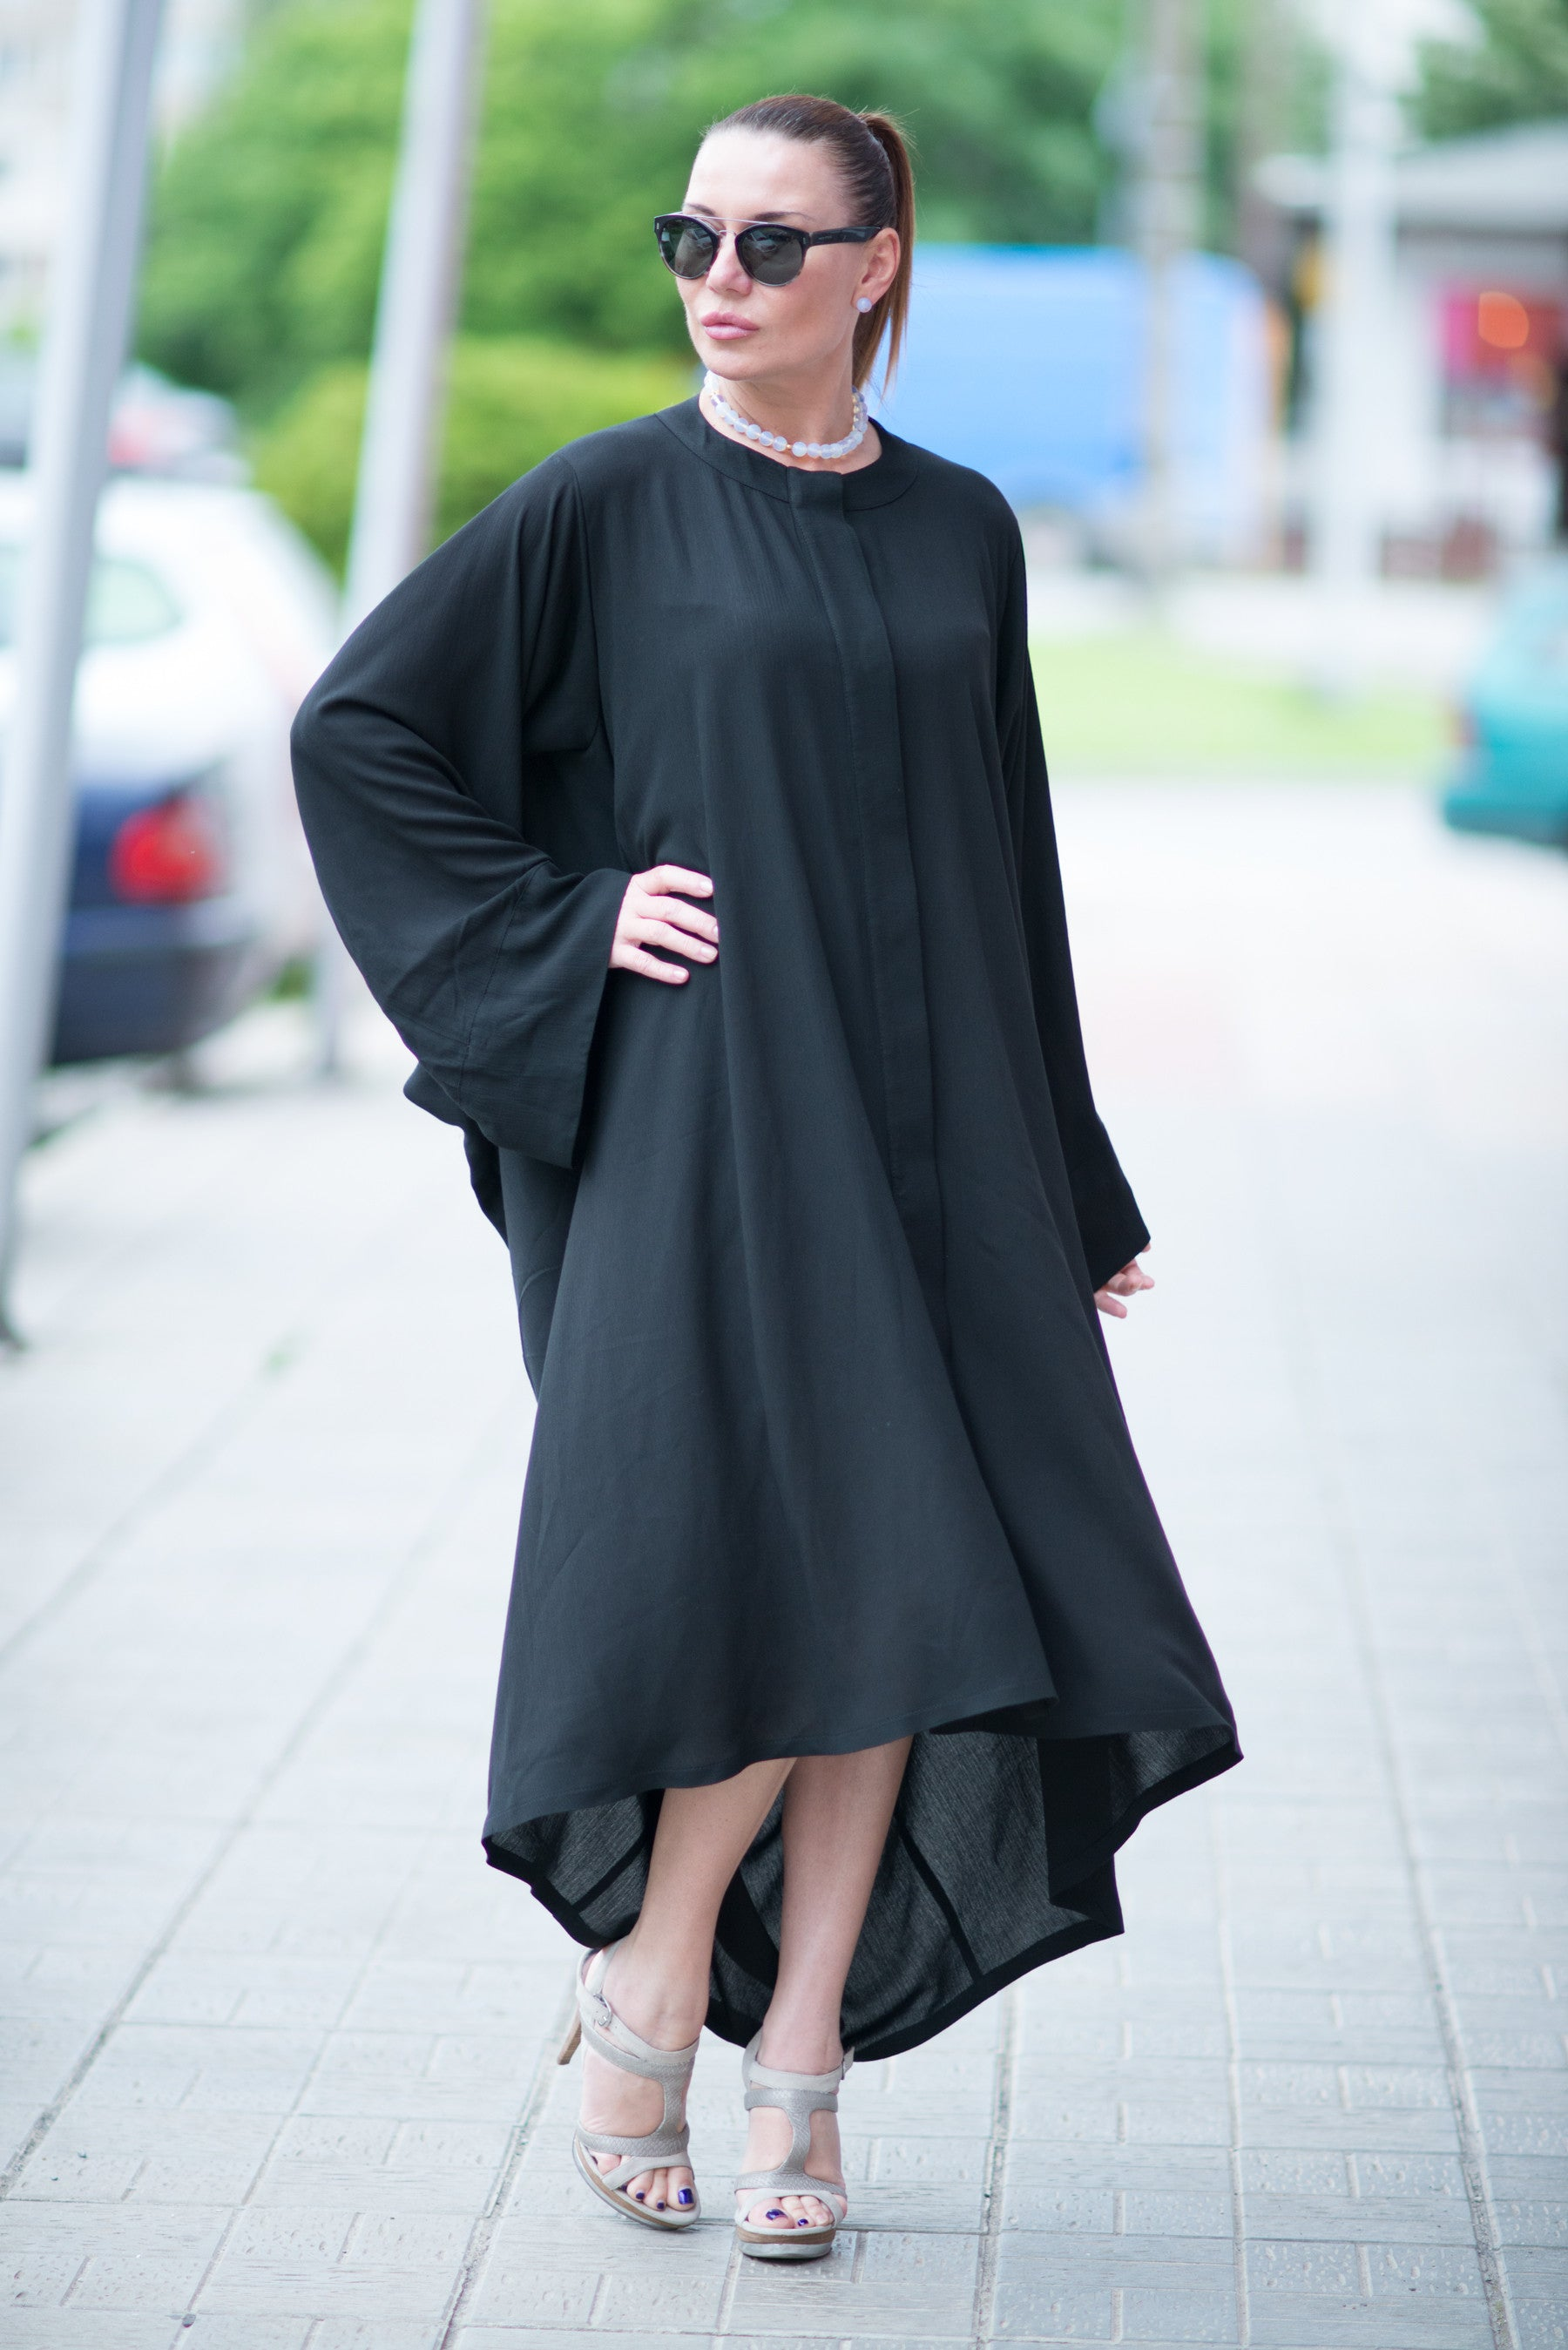 Black Cotton Abaya Loose Maxi Dress, Kaftans Clothing